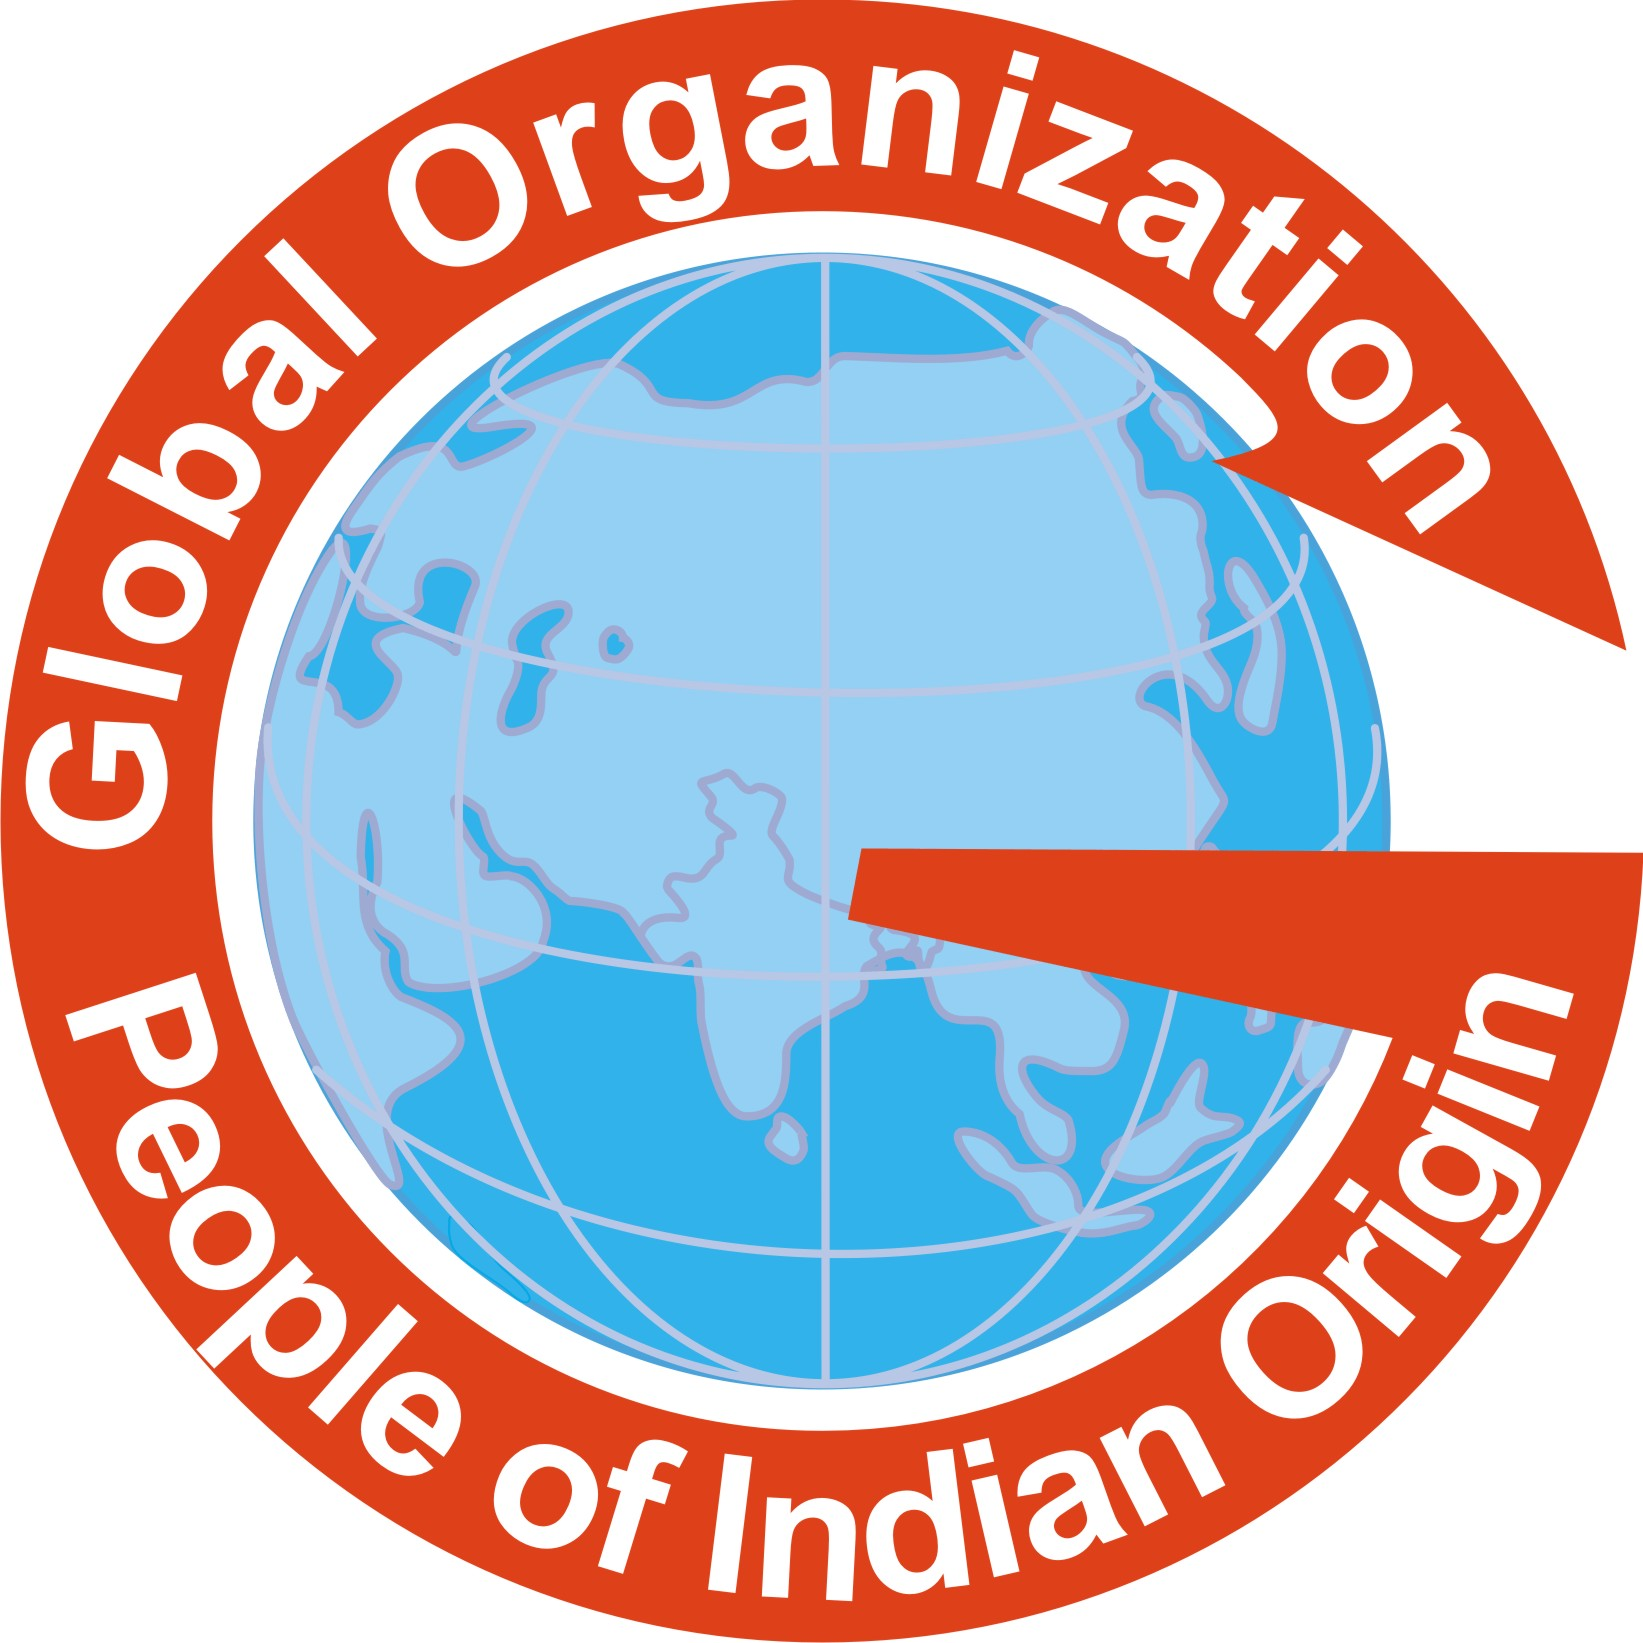 GLOBAL DIASPORA BODY SEEKS CLOSER TIES WITH INDIA